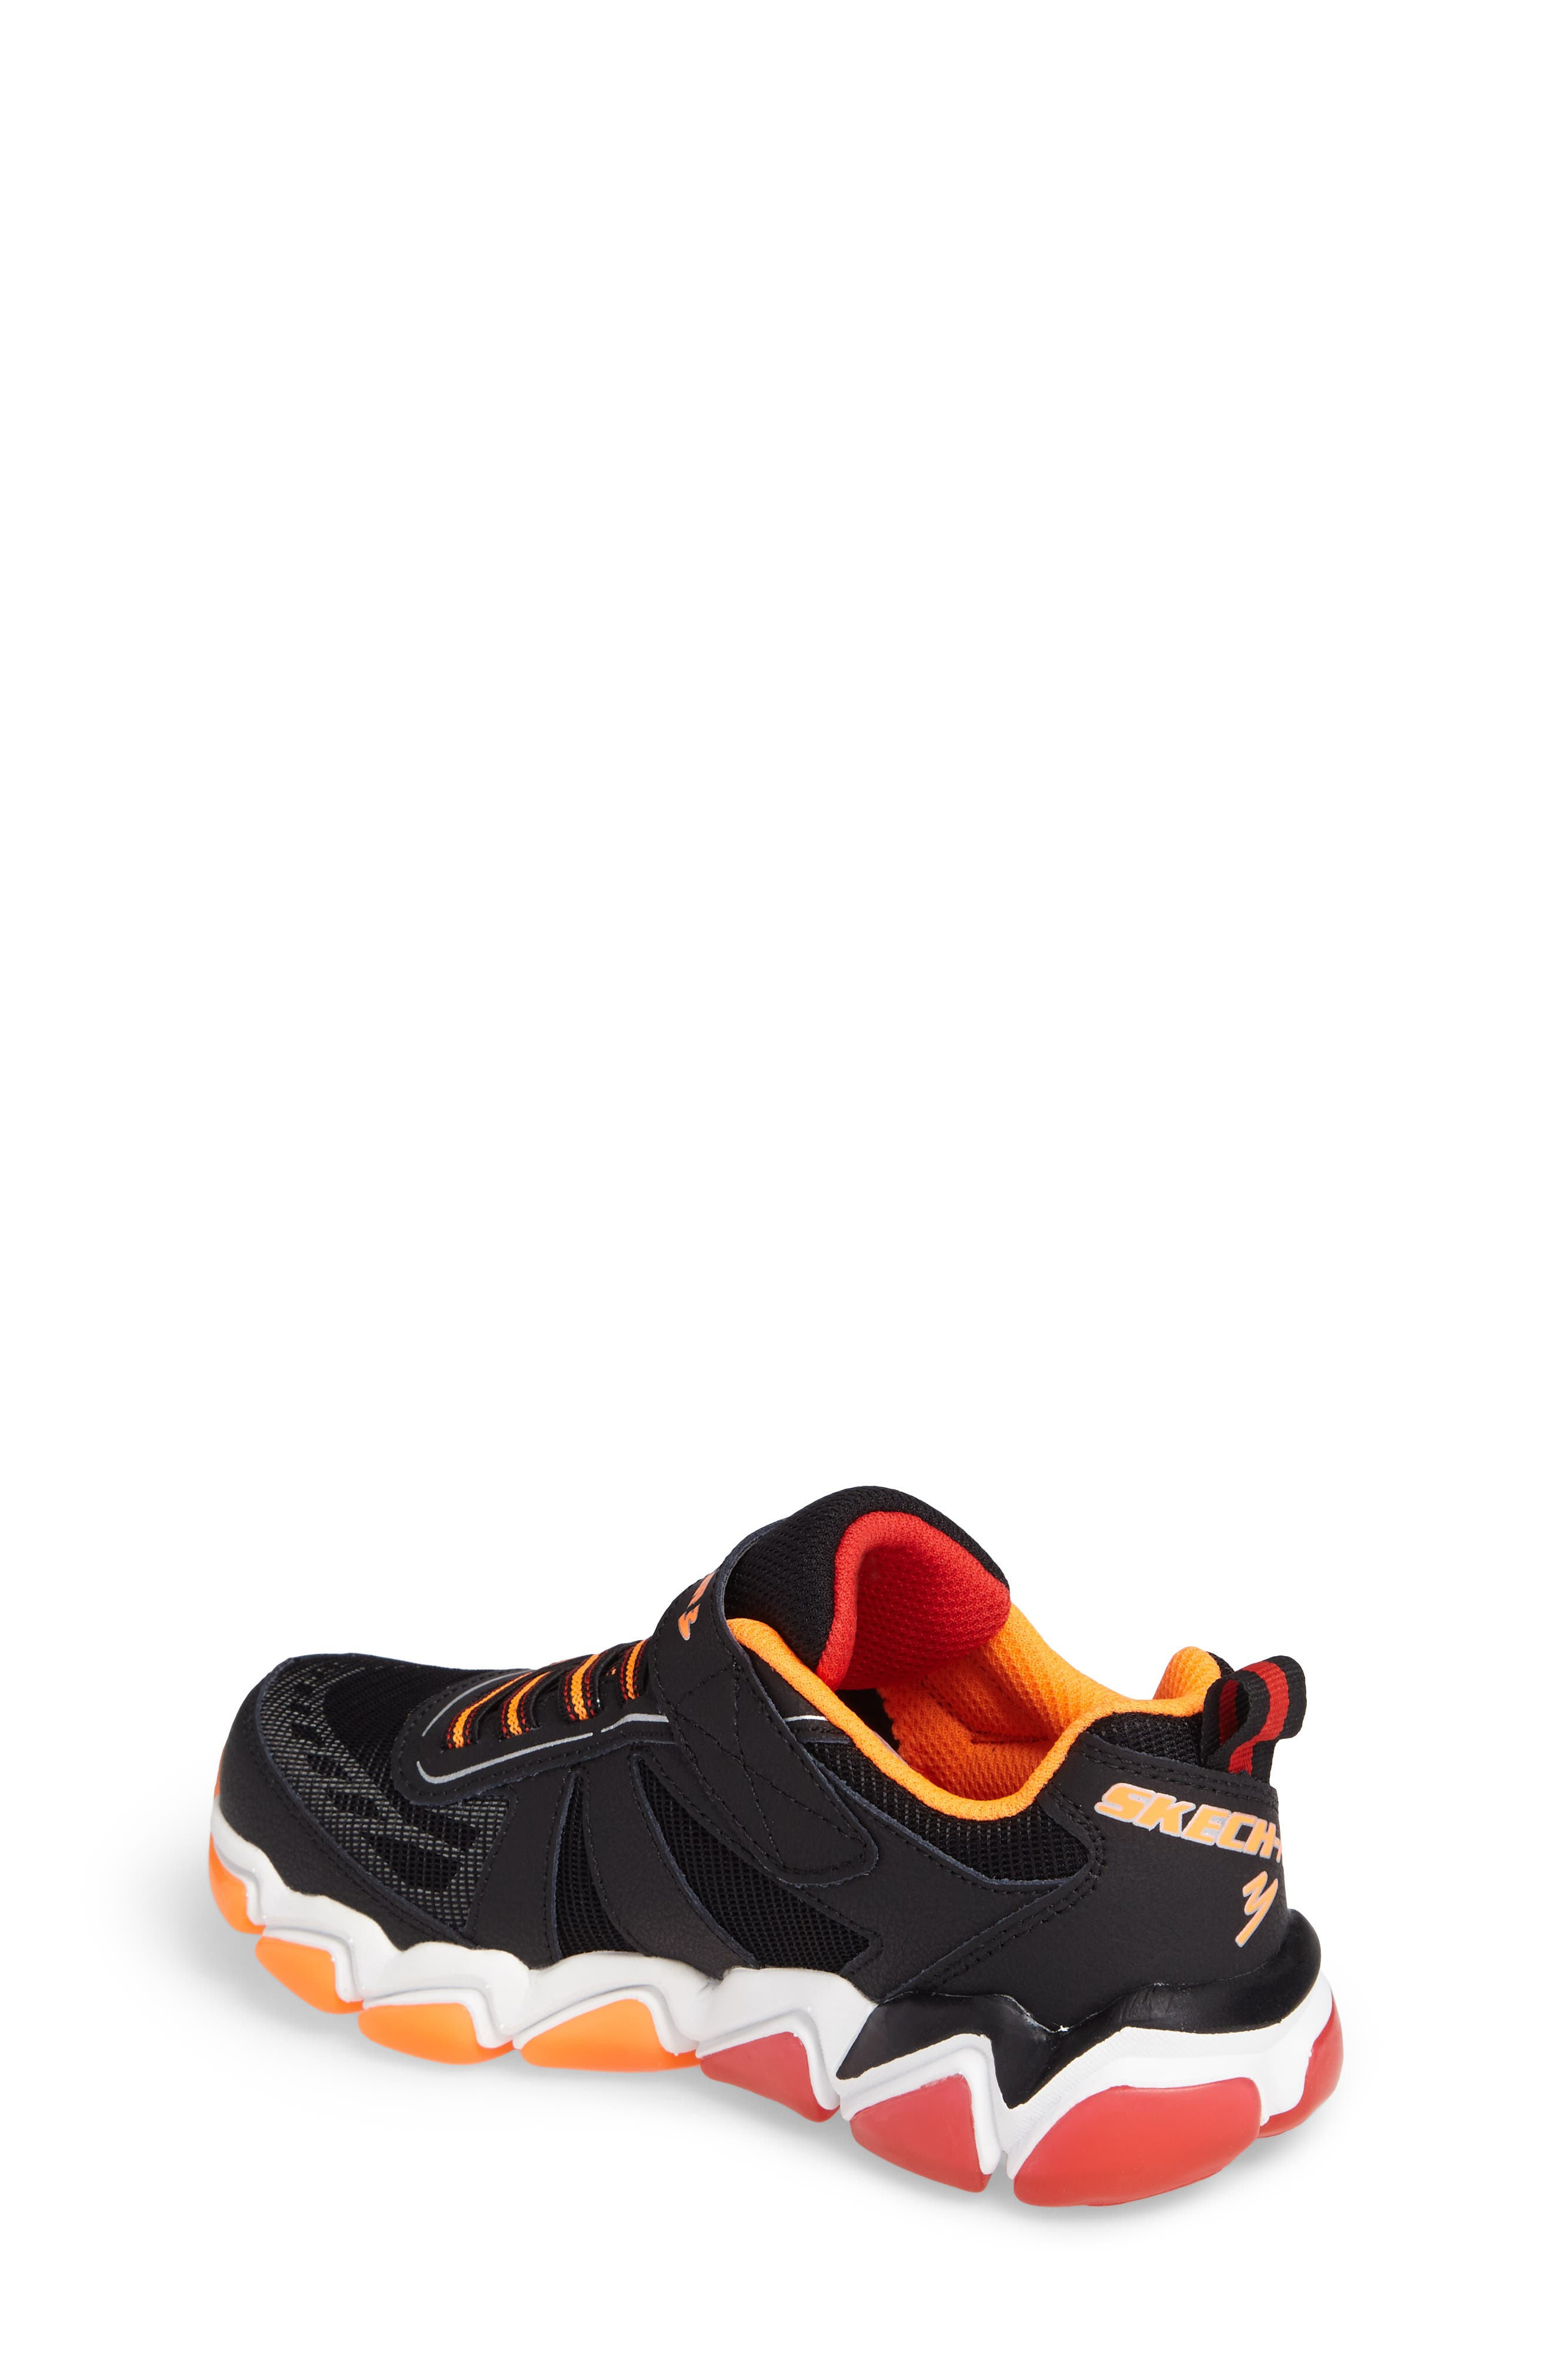 Skech-Air 3.0 Downswitch Sneaker,                             Alternate thumbnail 3, color,